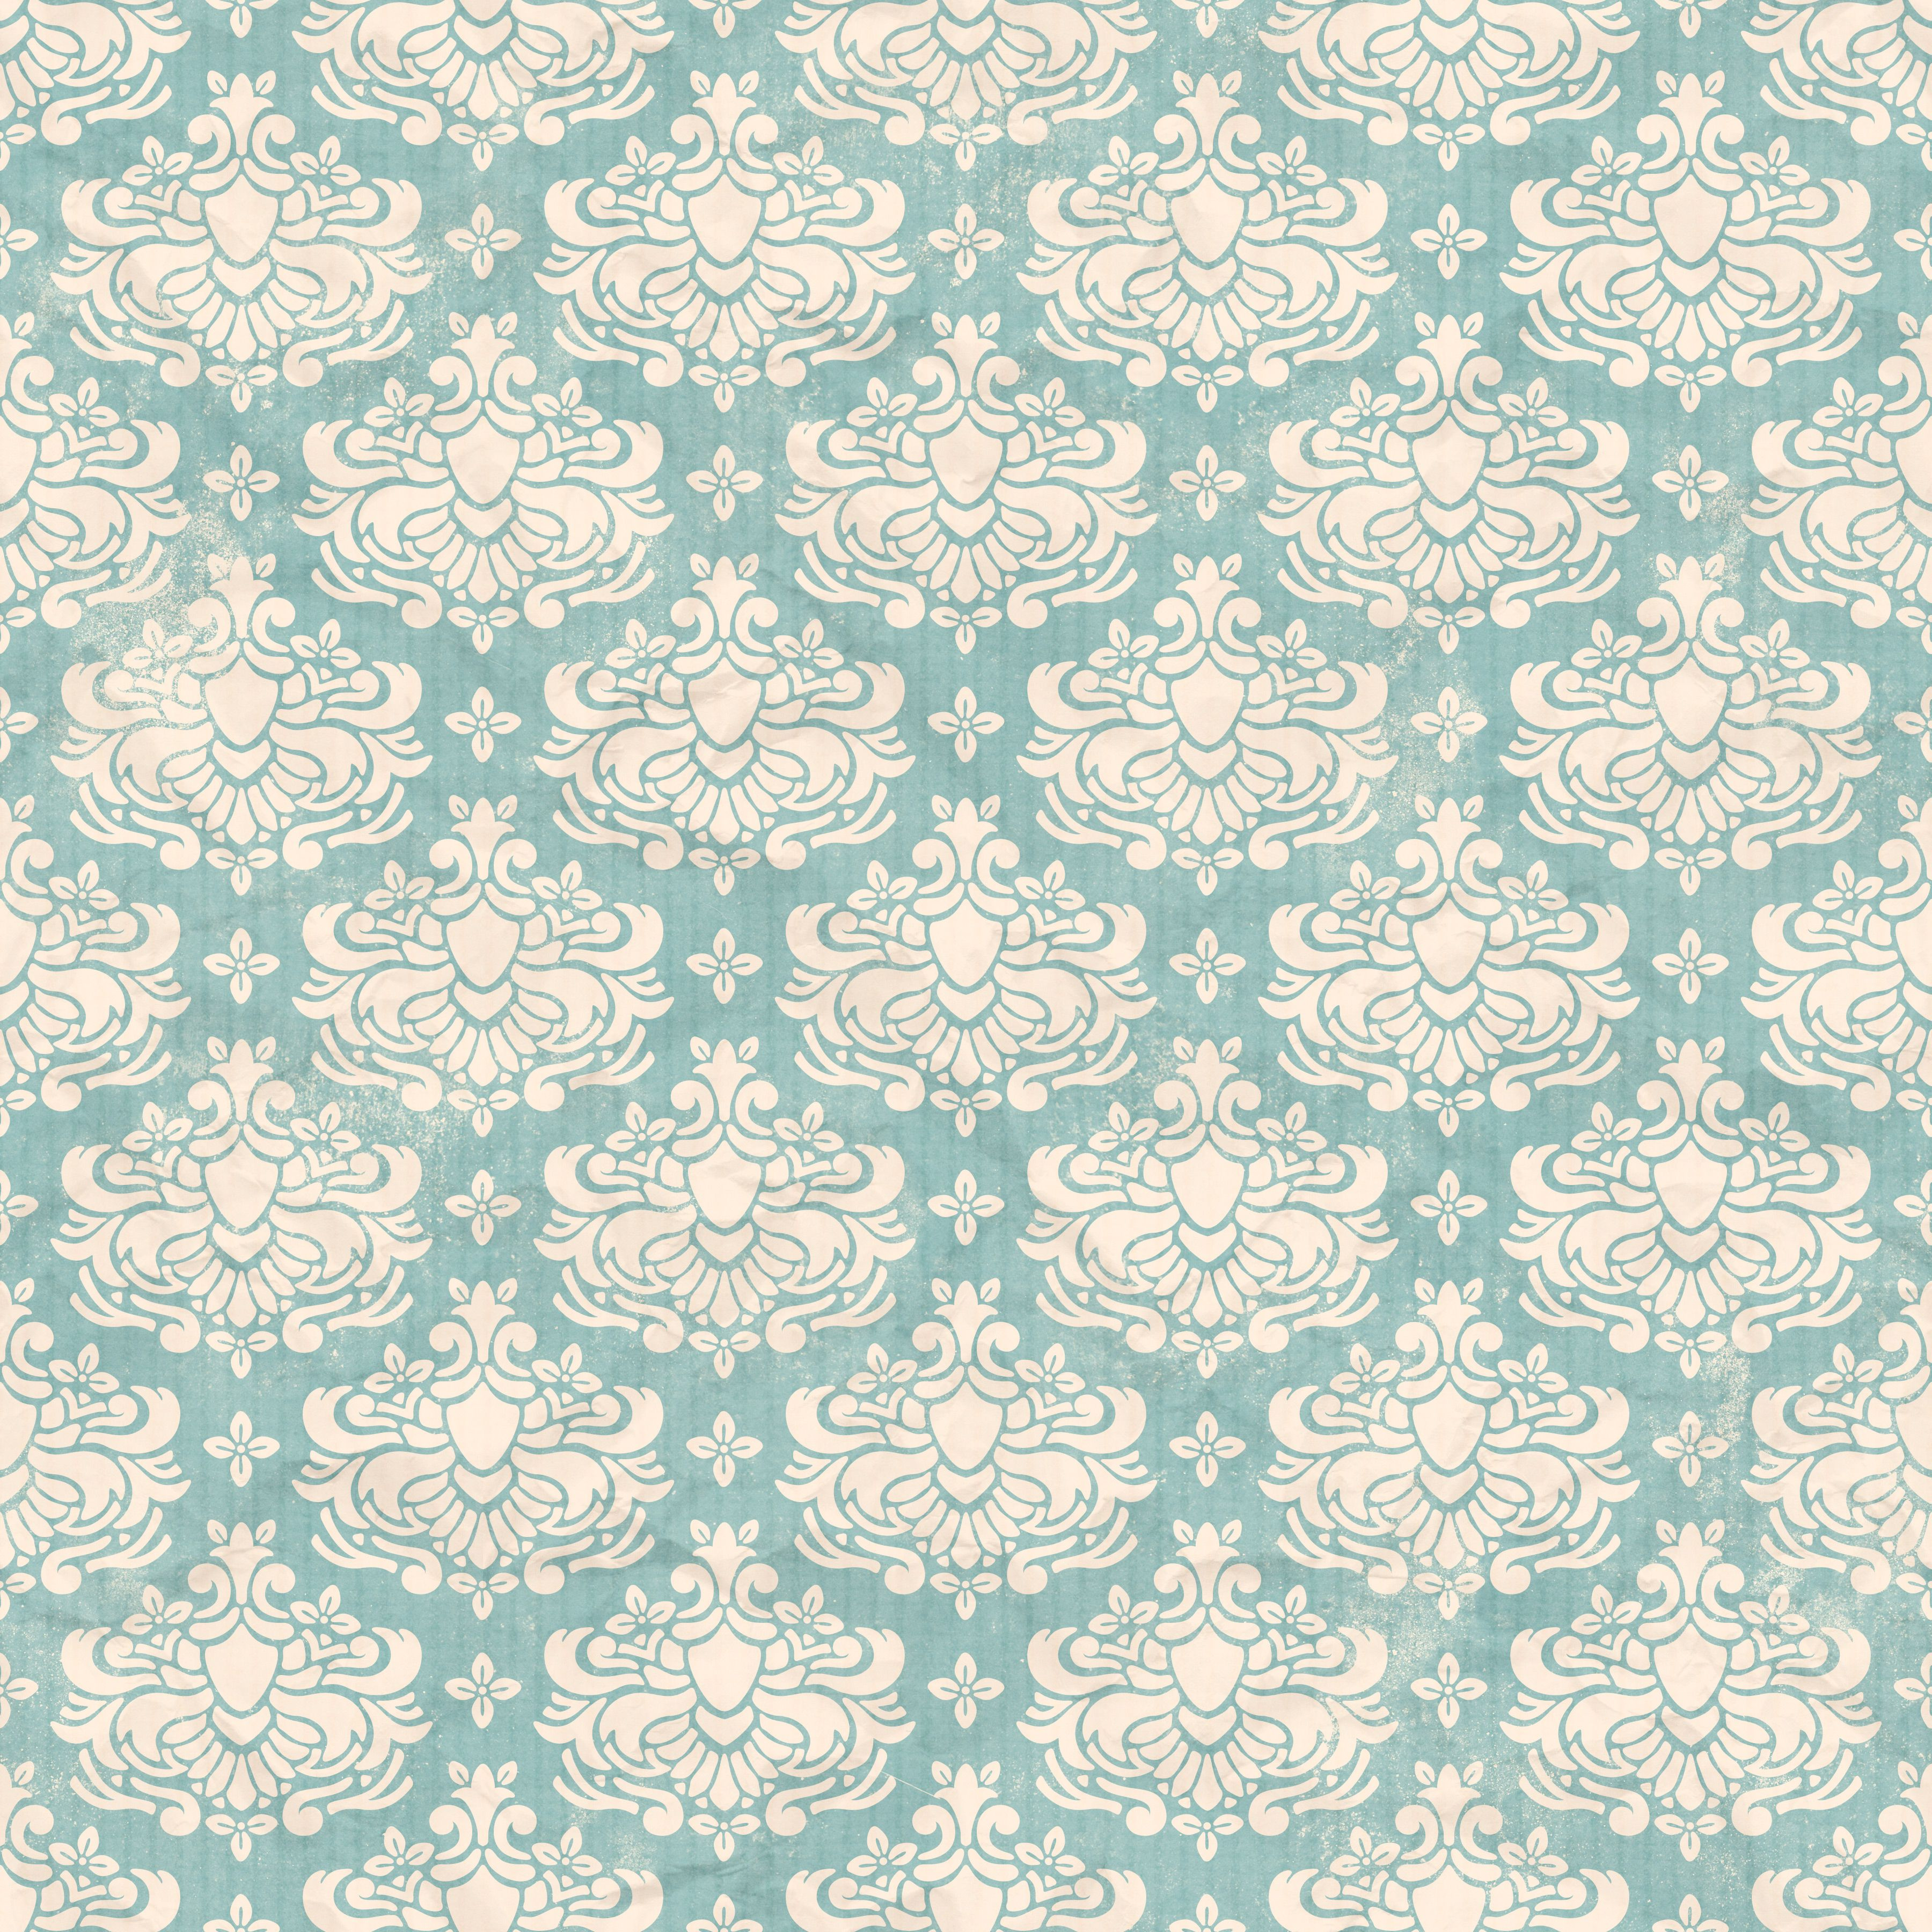 38 Awesome scrapbook paper texture images | Recursos ...